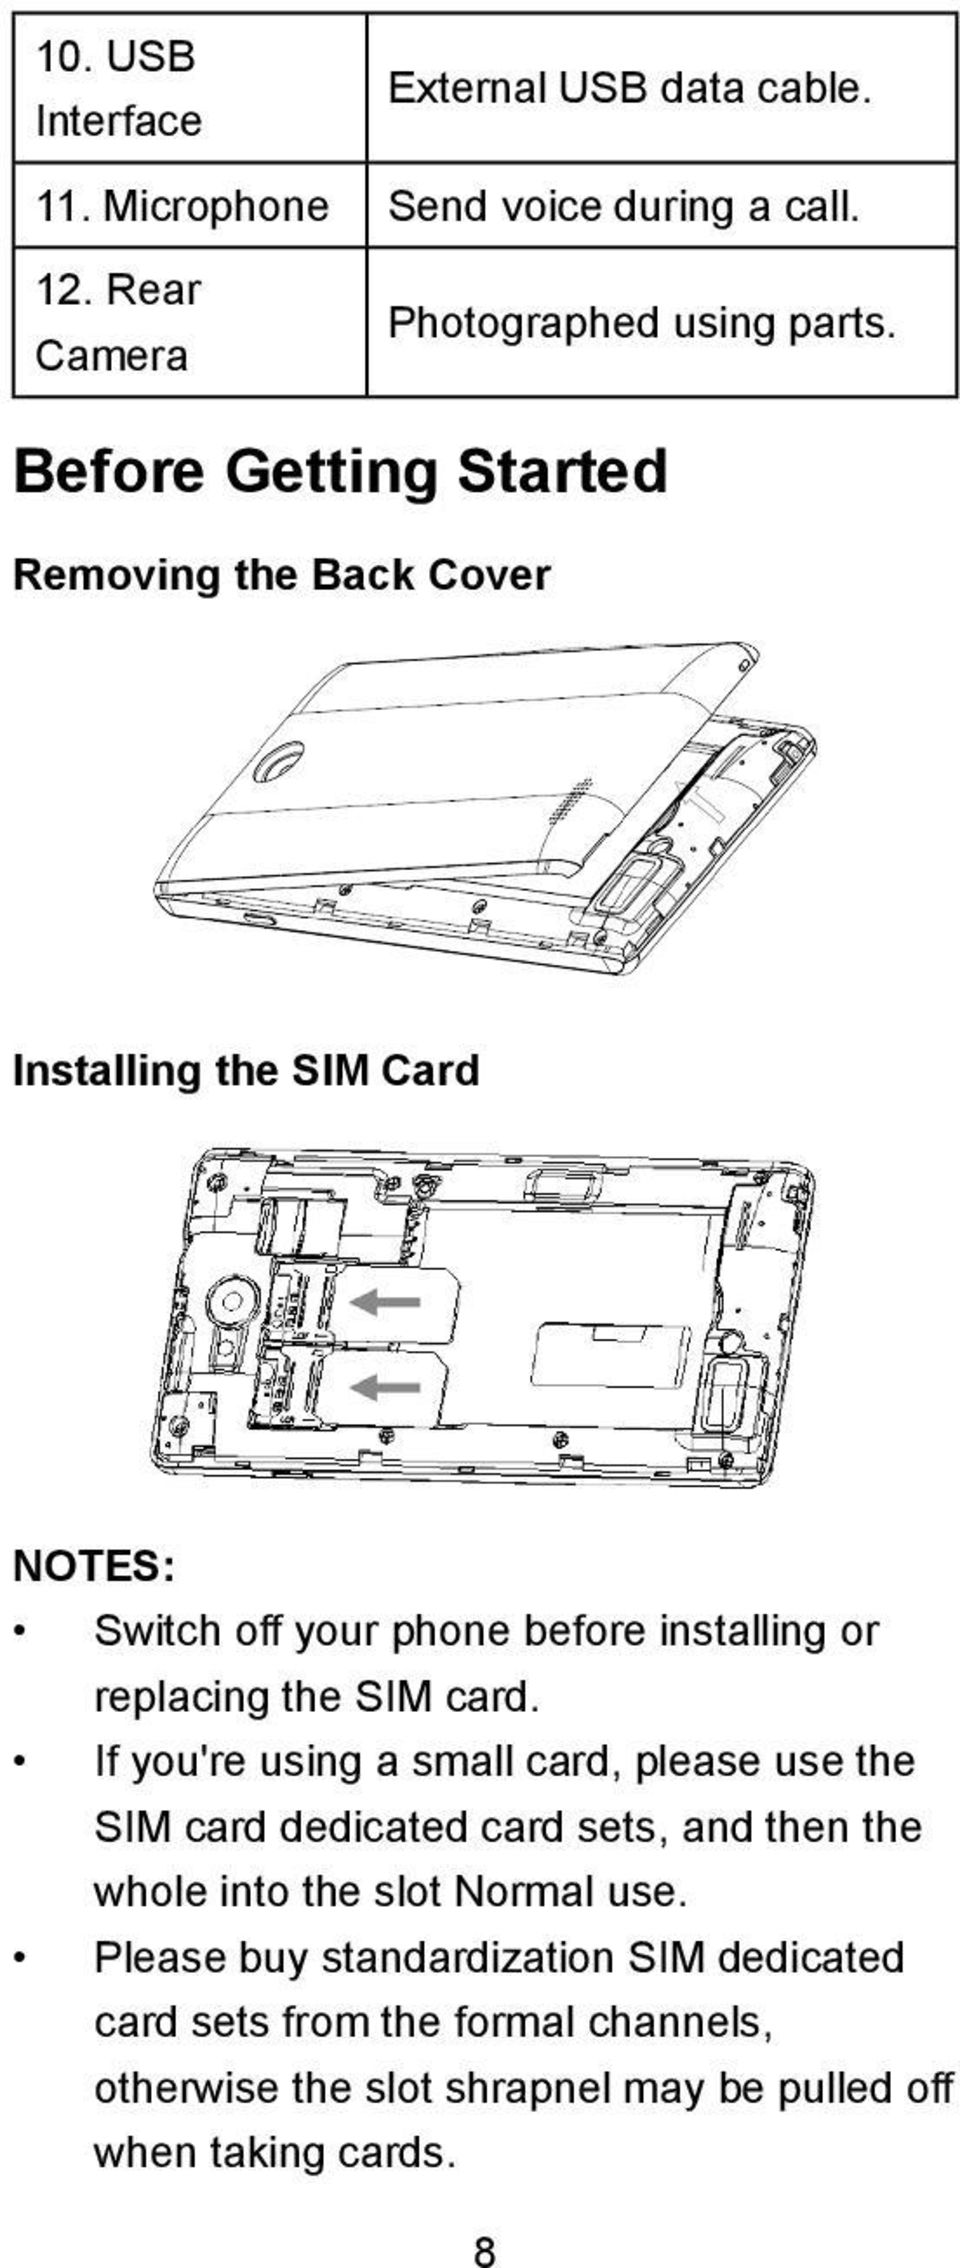 the SIM card. If you're using a small card, please use the SIM card dedicated card sets, and then the whole into the slot Normal use.